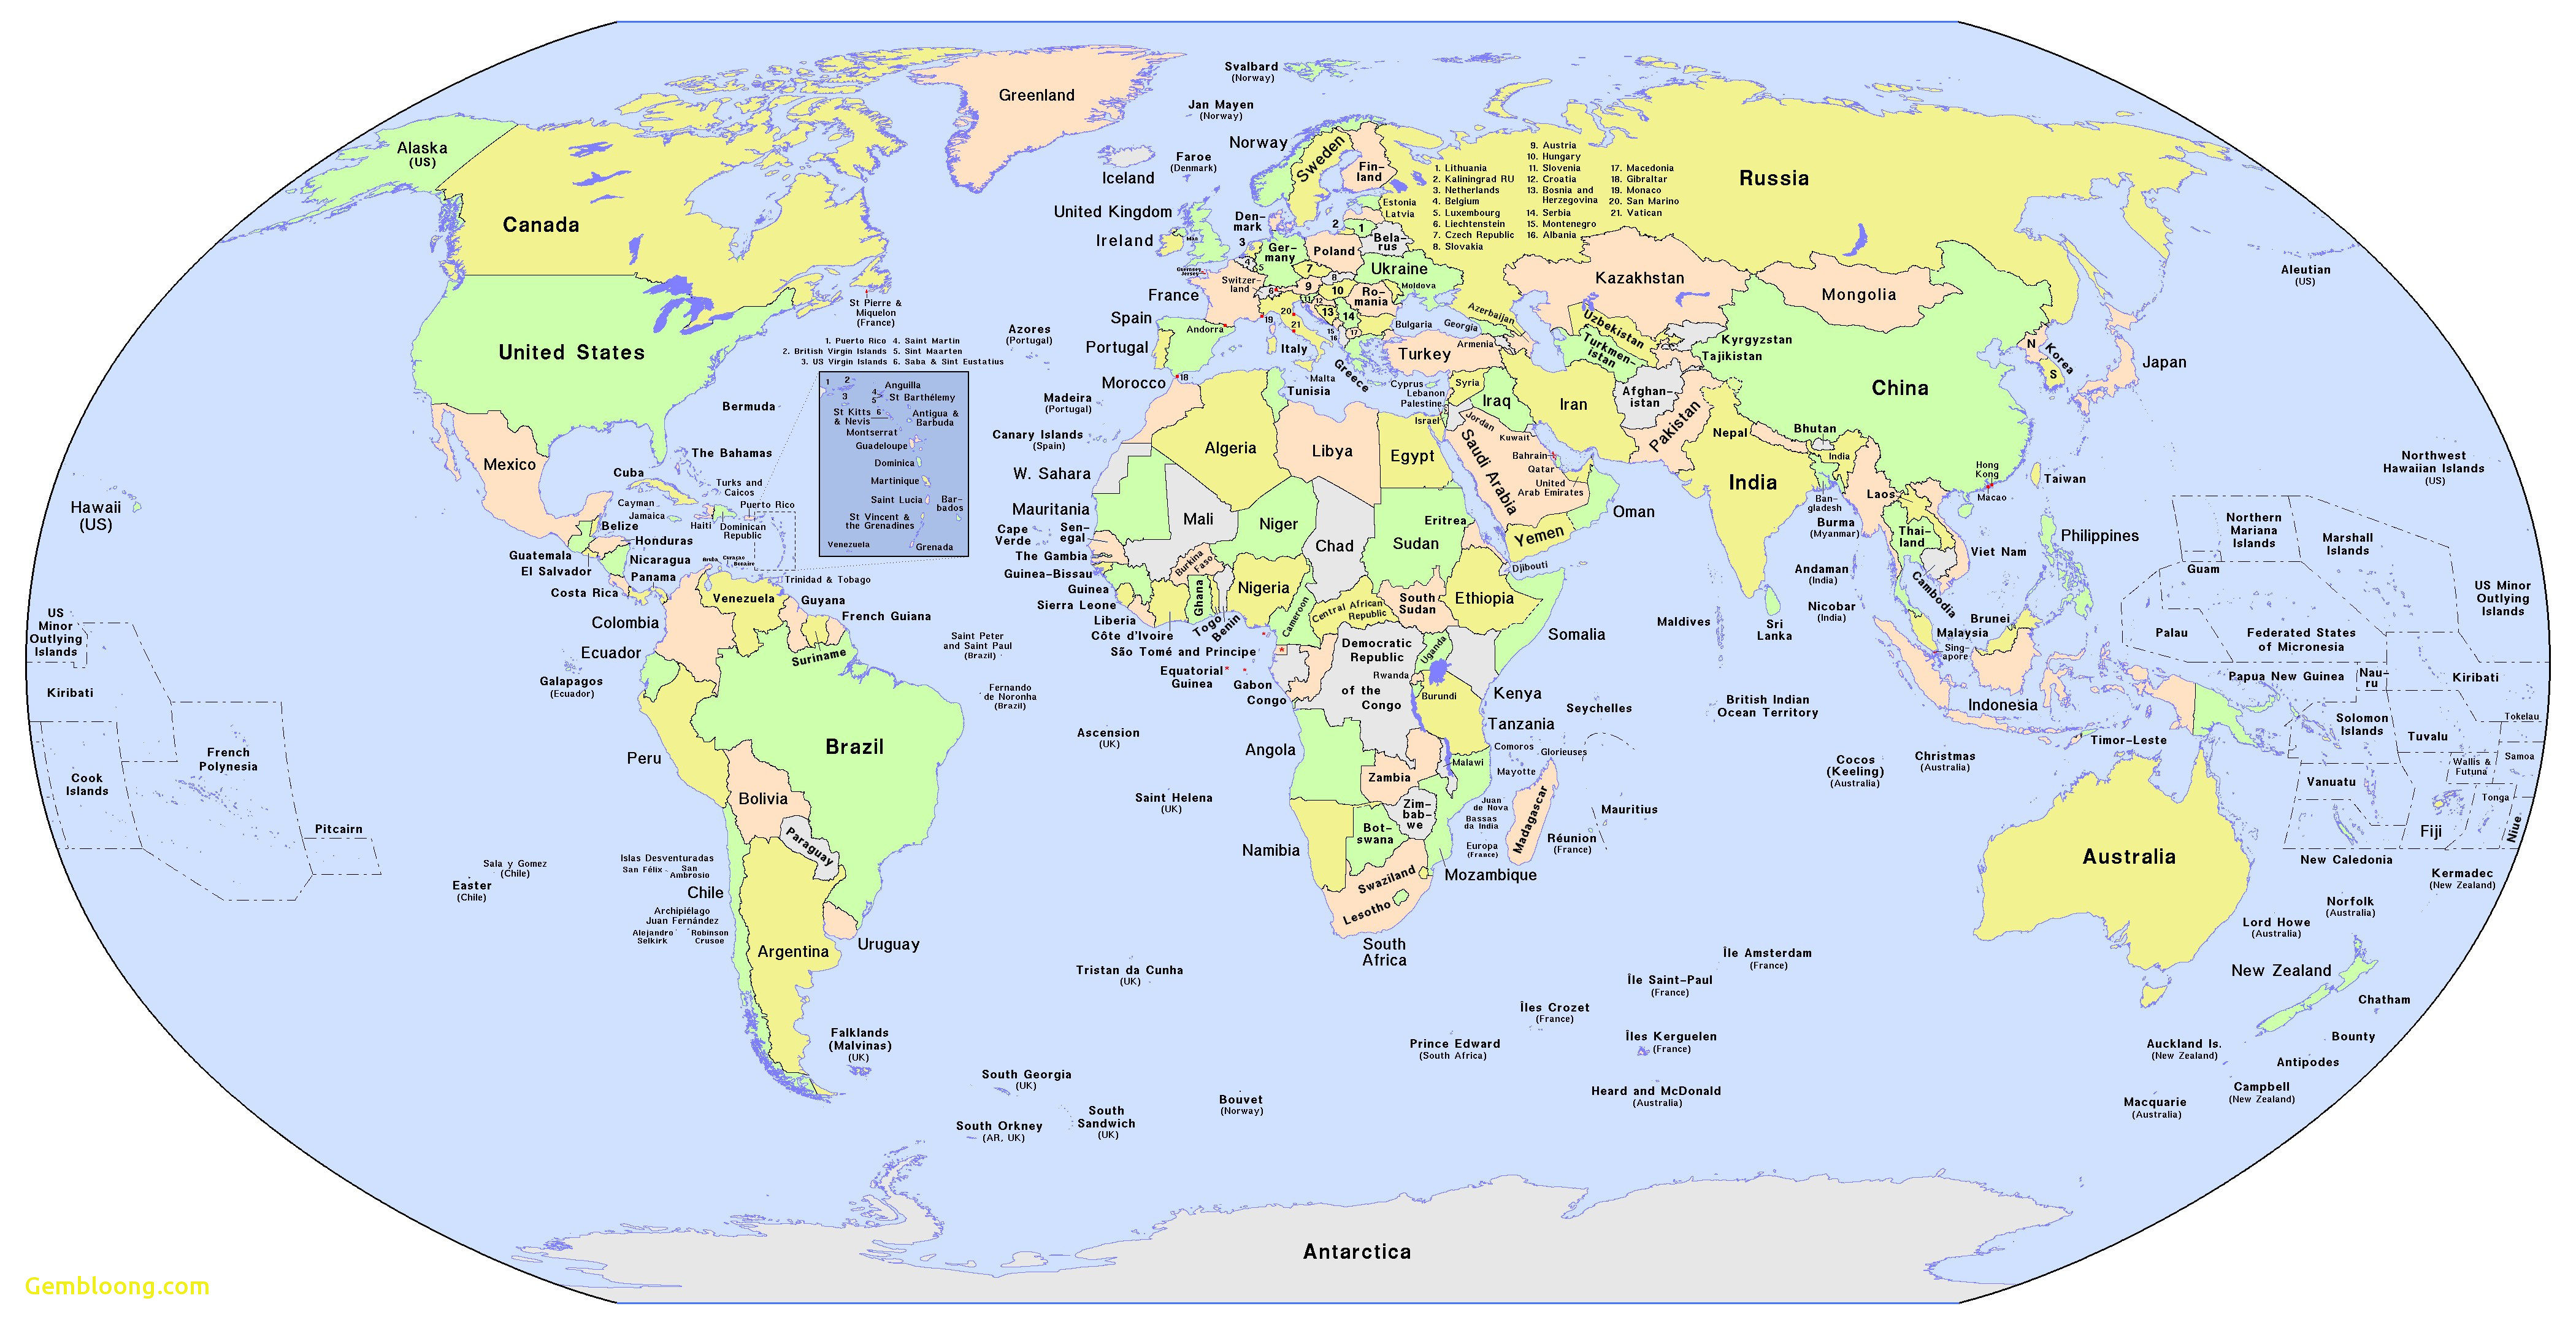 Printable World Maps With Countries - Tuquyhai - Printable World Map With Countries